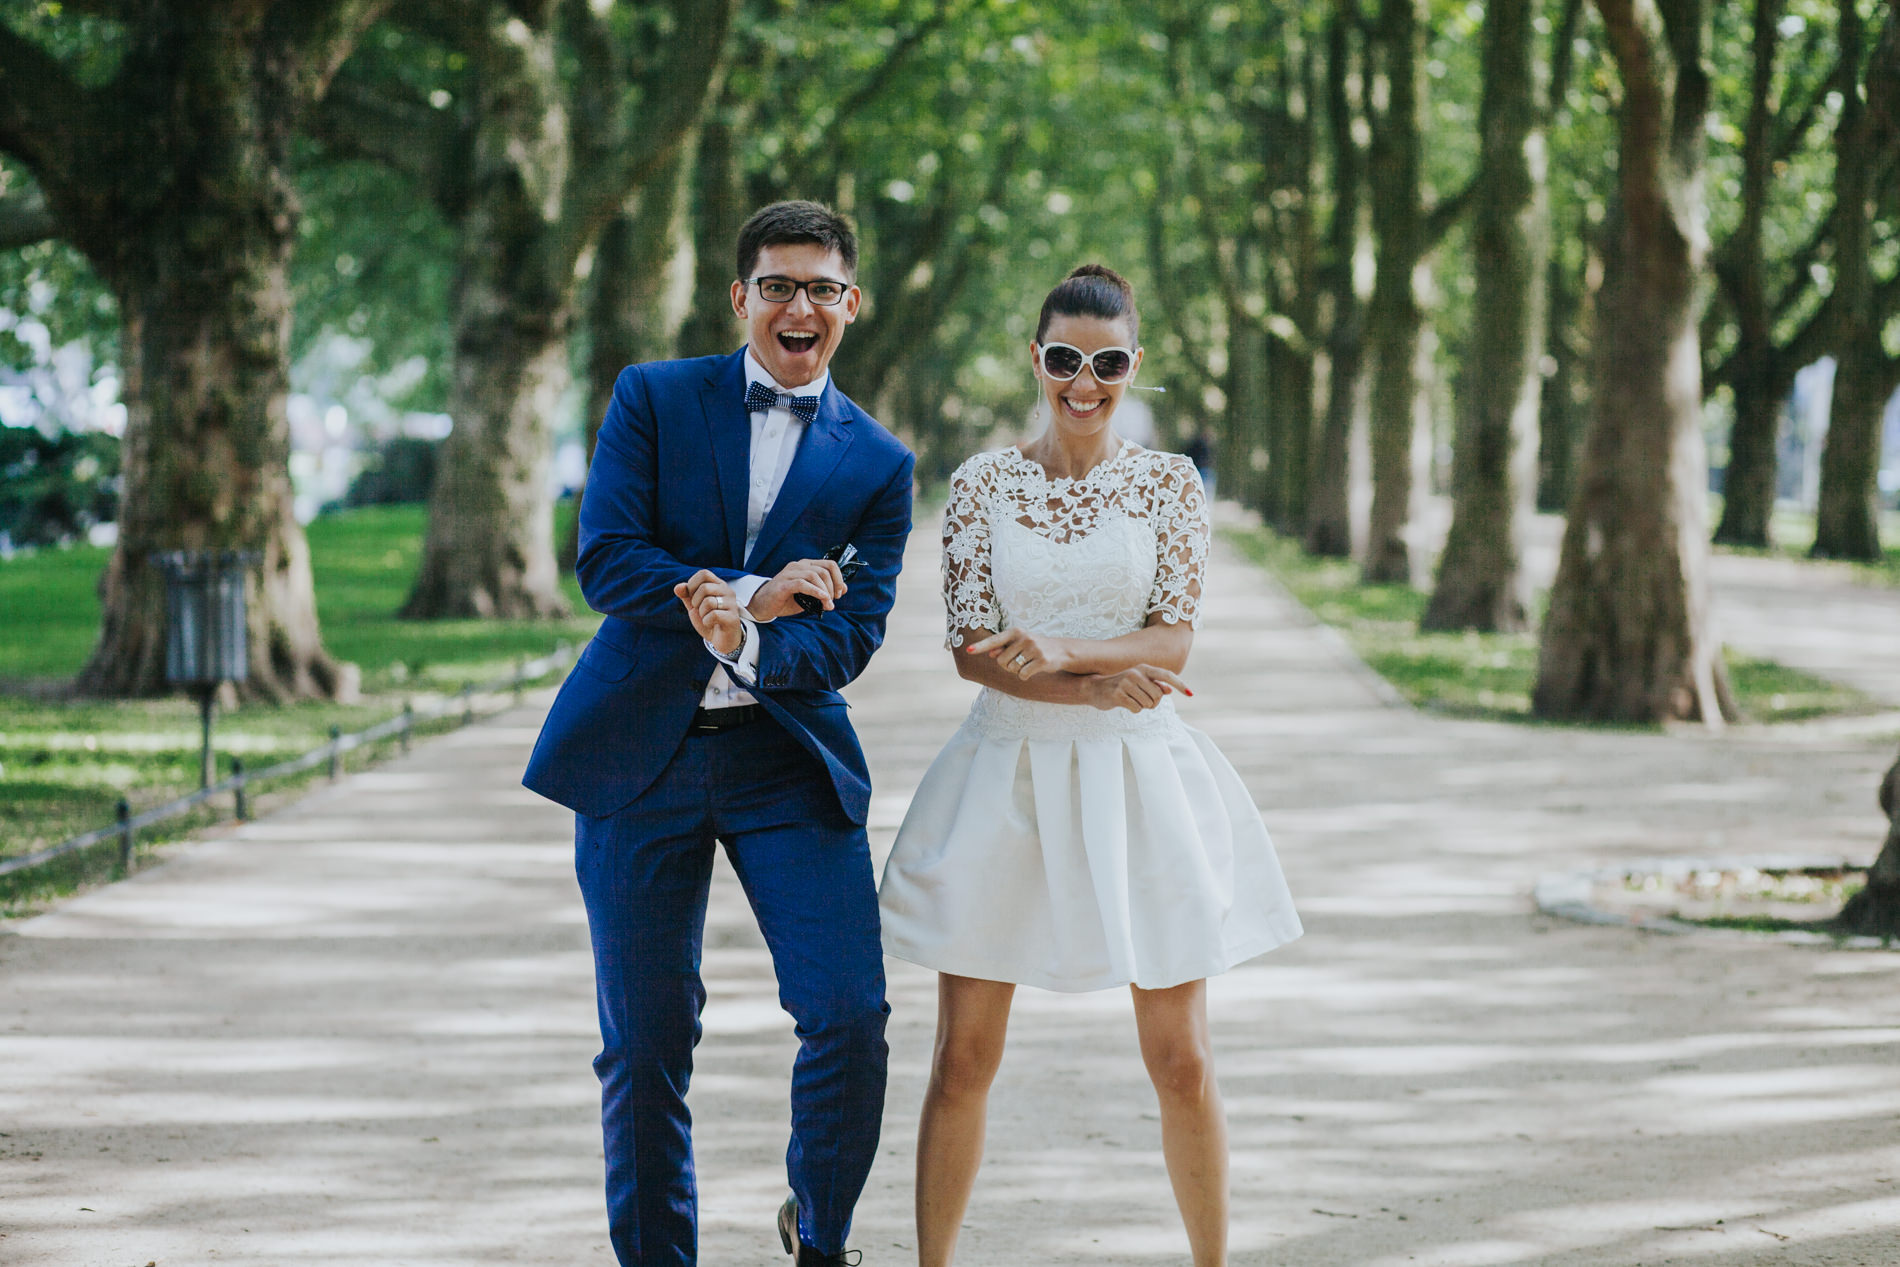 Alternative wedding photographer London - eva photography